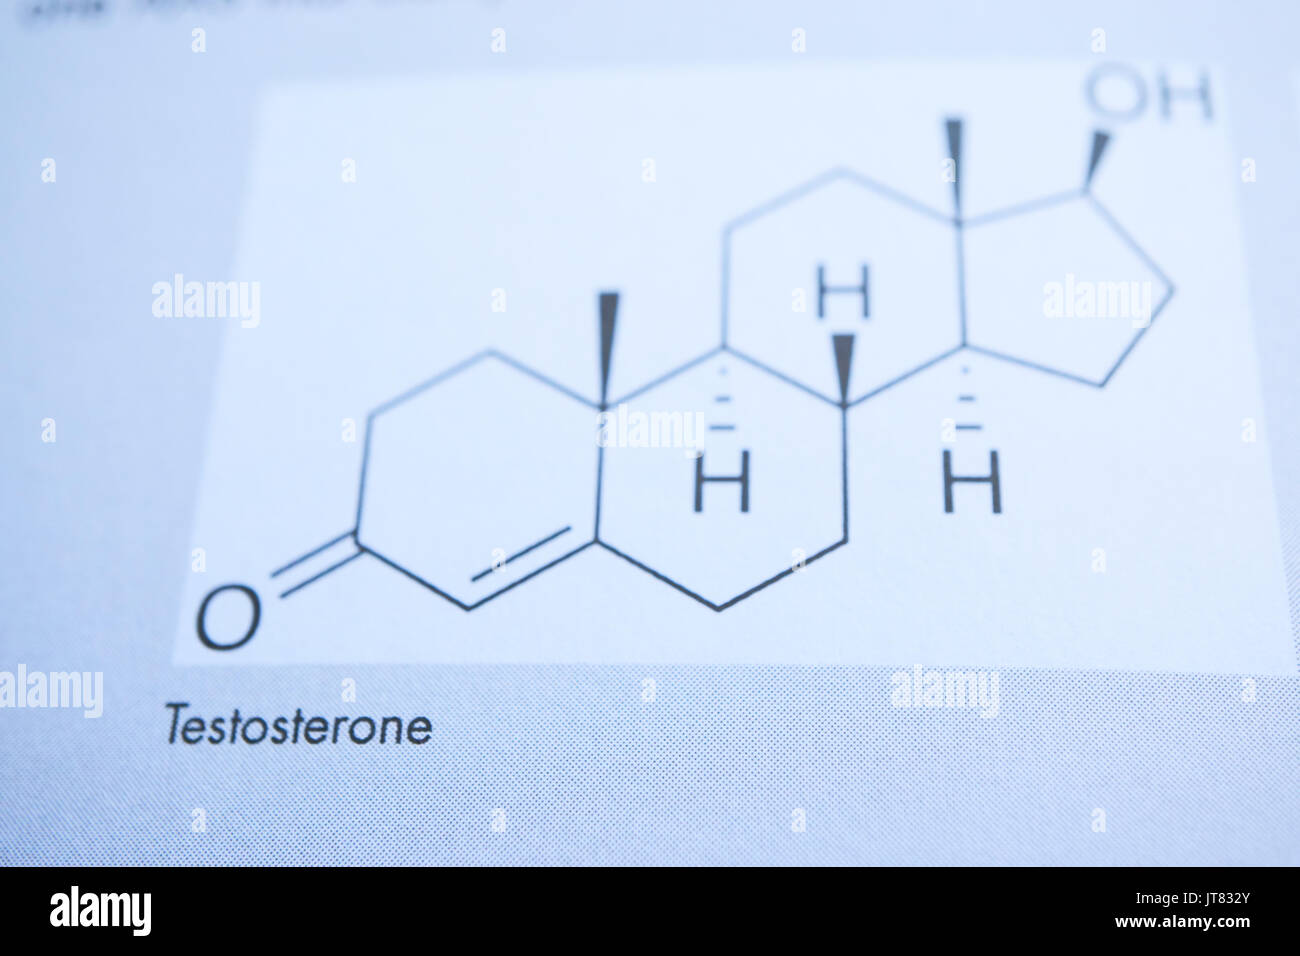 chemical formulation of mans hormone testosterone in graphical view. closeup shot - Stock Image